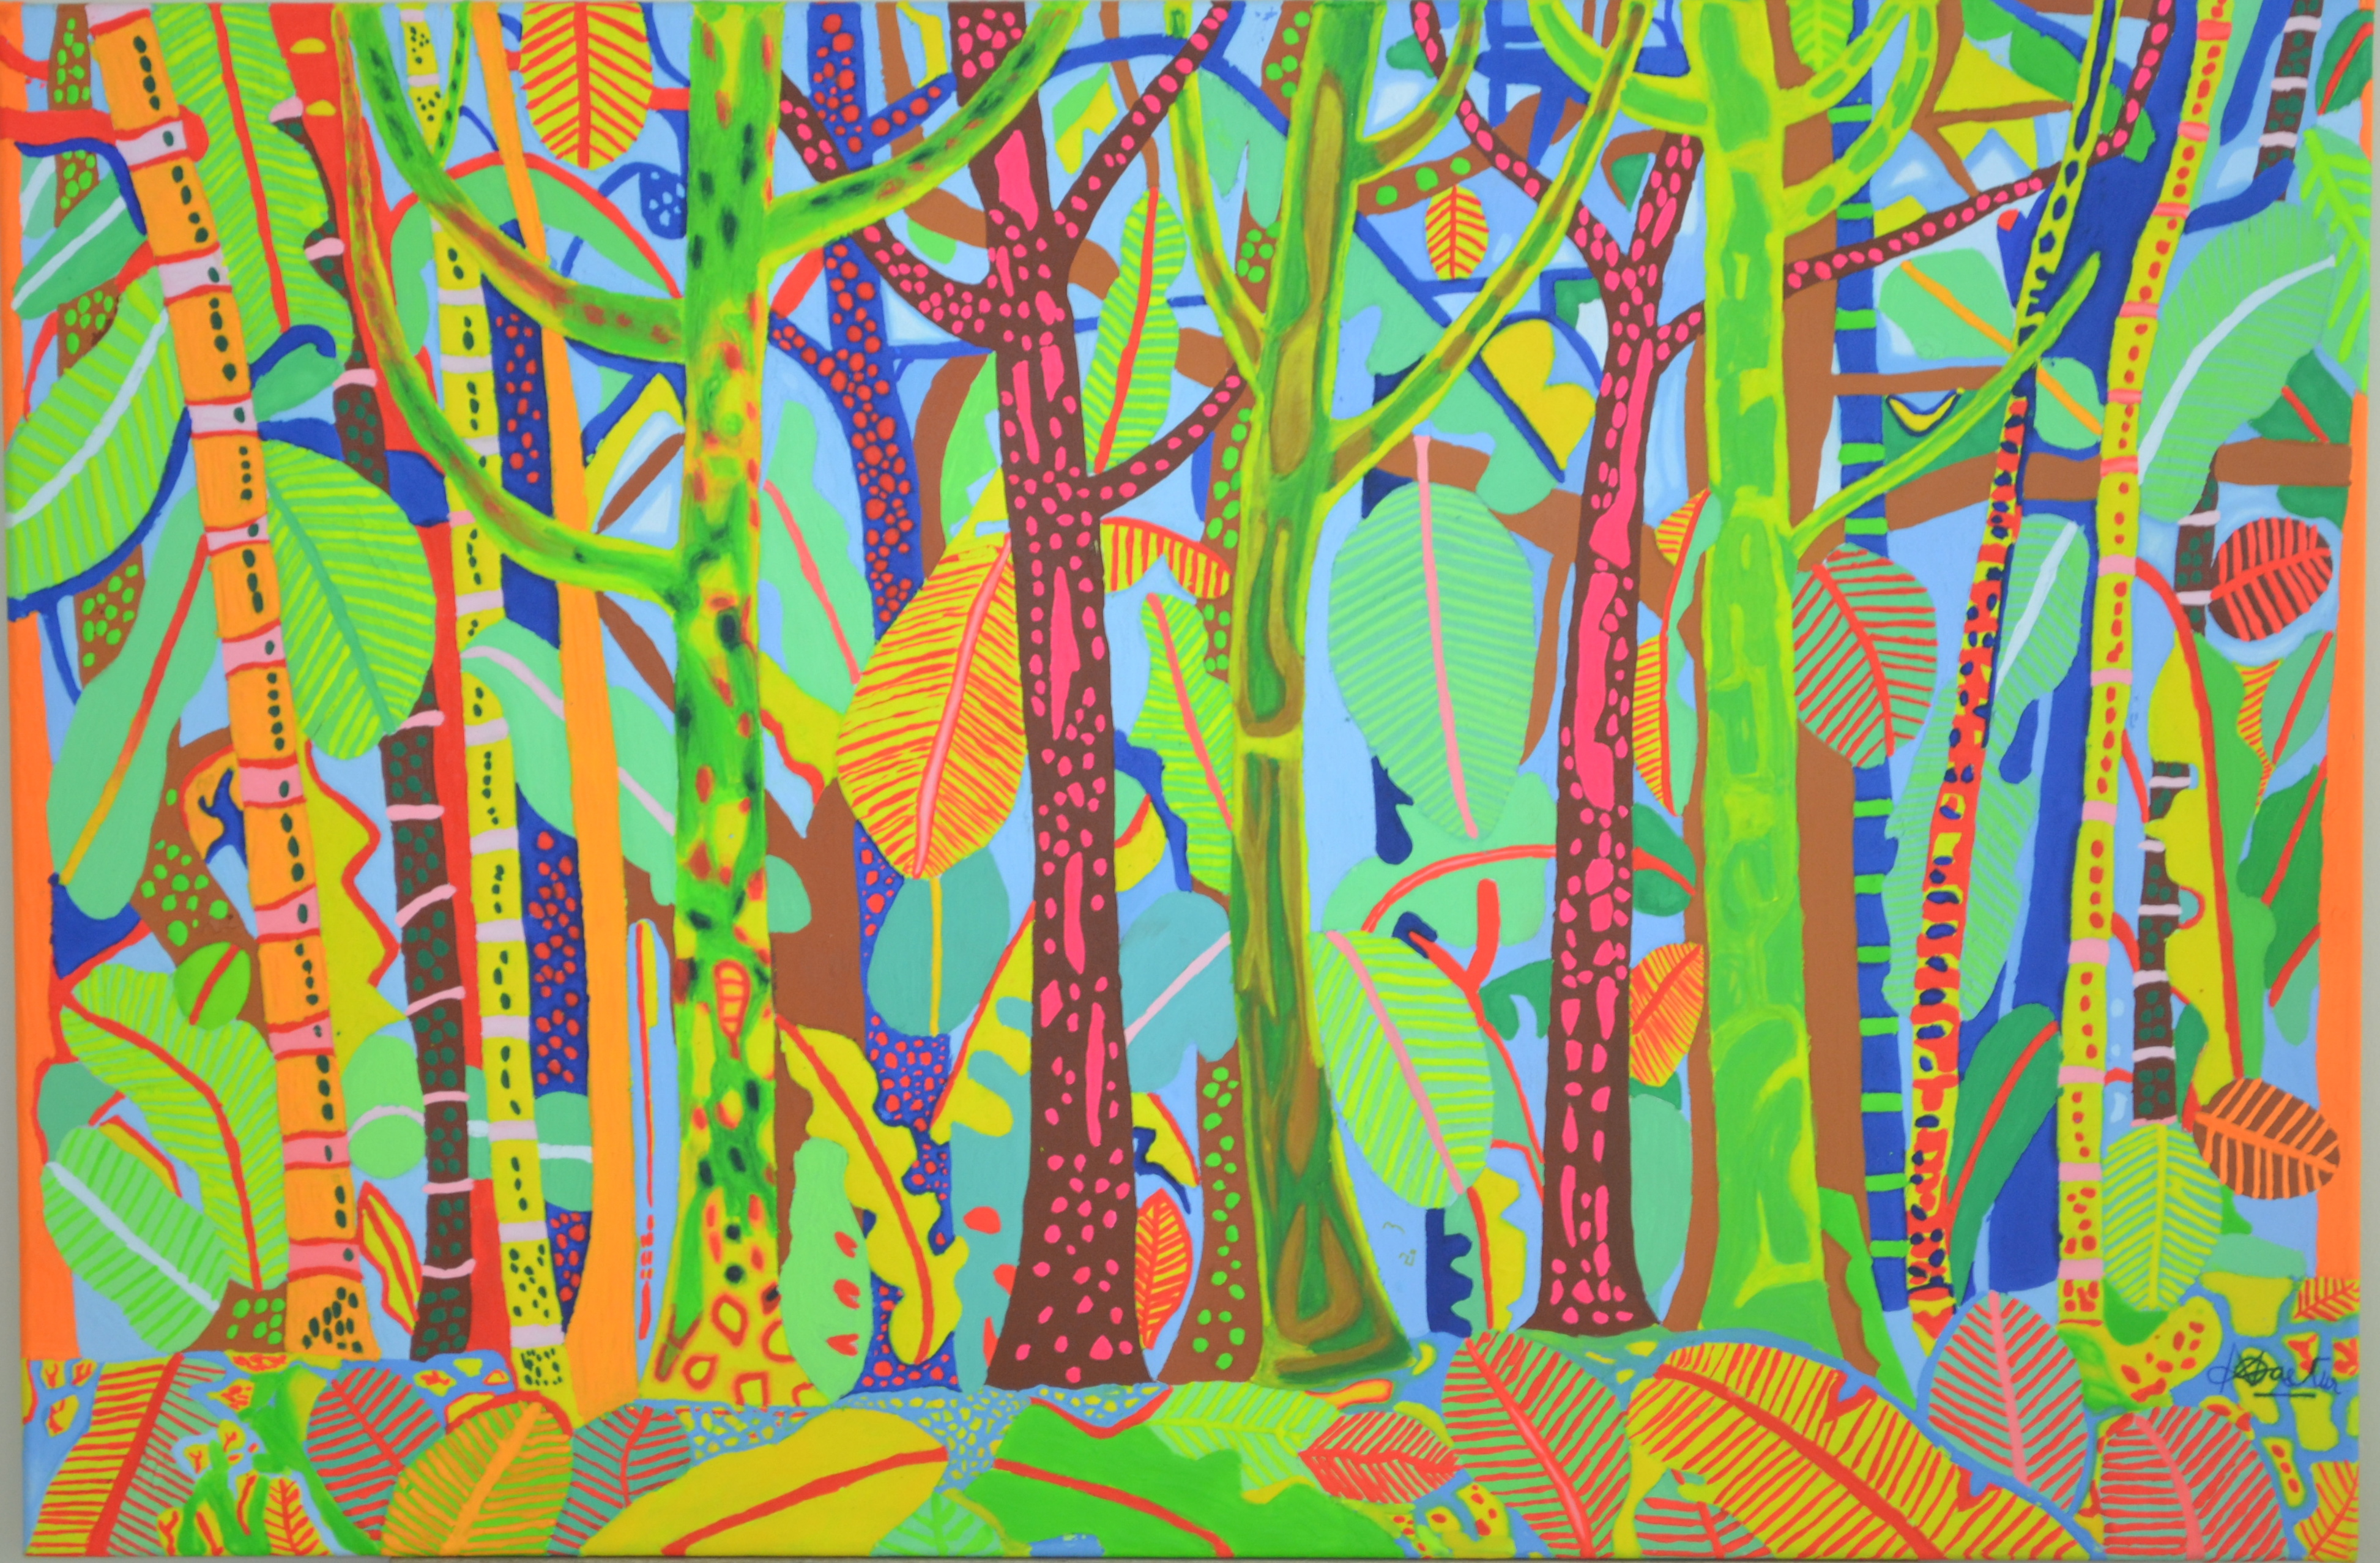 FAIRY FOREST artwork by Athelstan Dastur - art listed for sale on Artplode